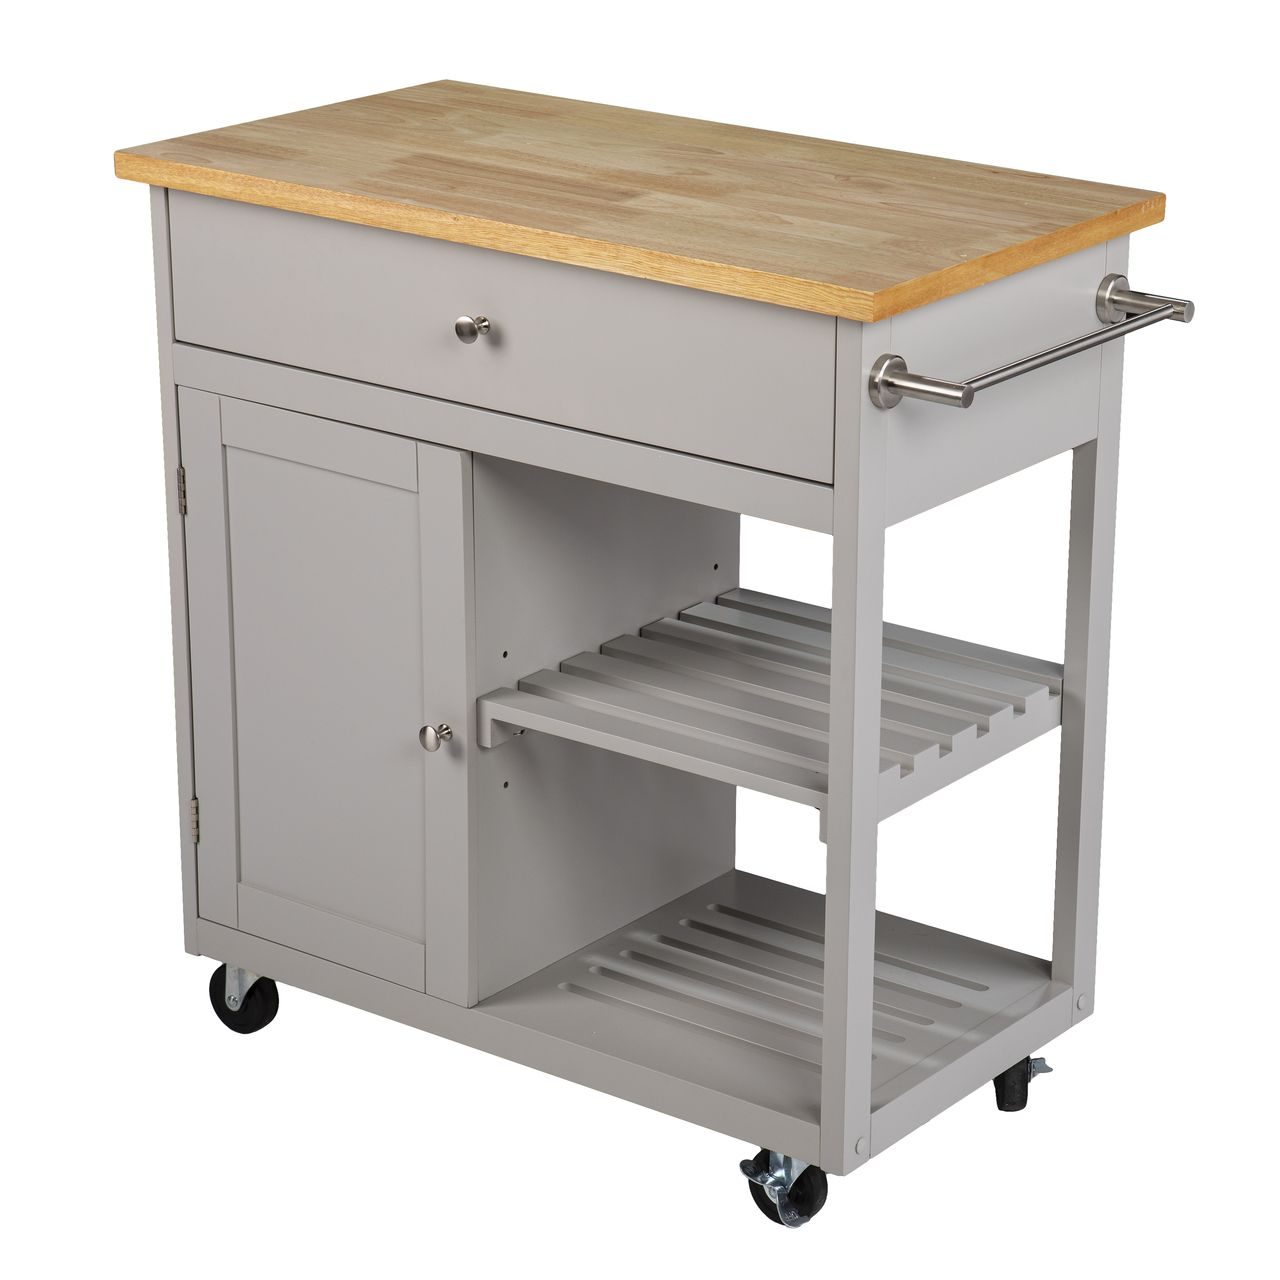 SEI Rolling Kitchen Island With Storage in Cool Gray / Natural